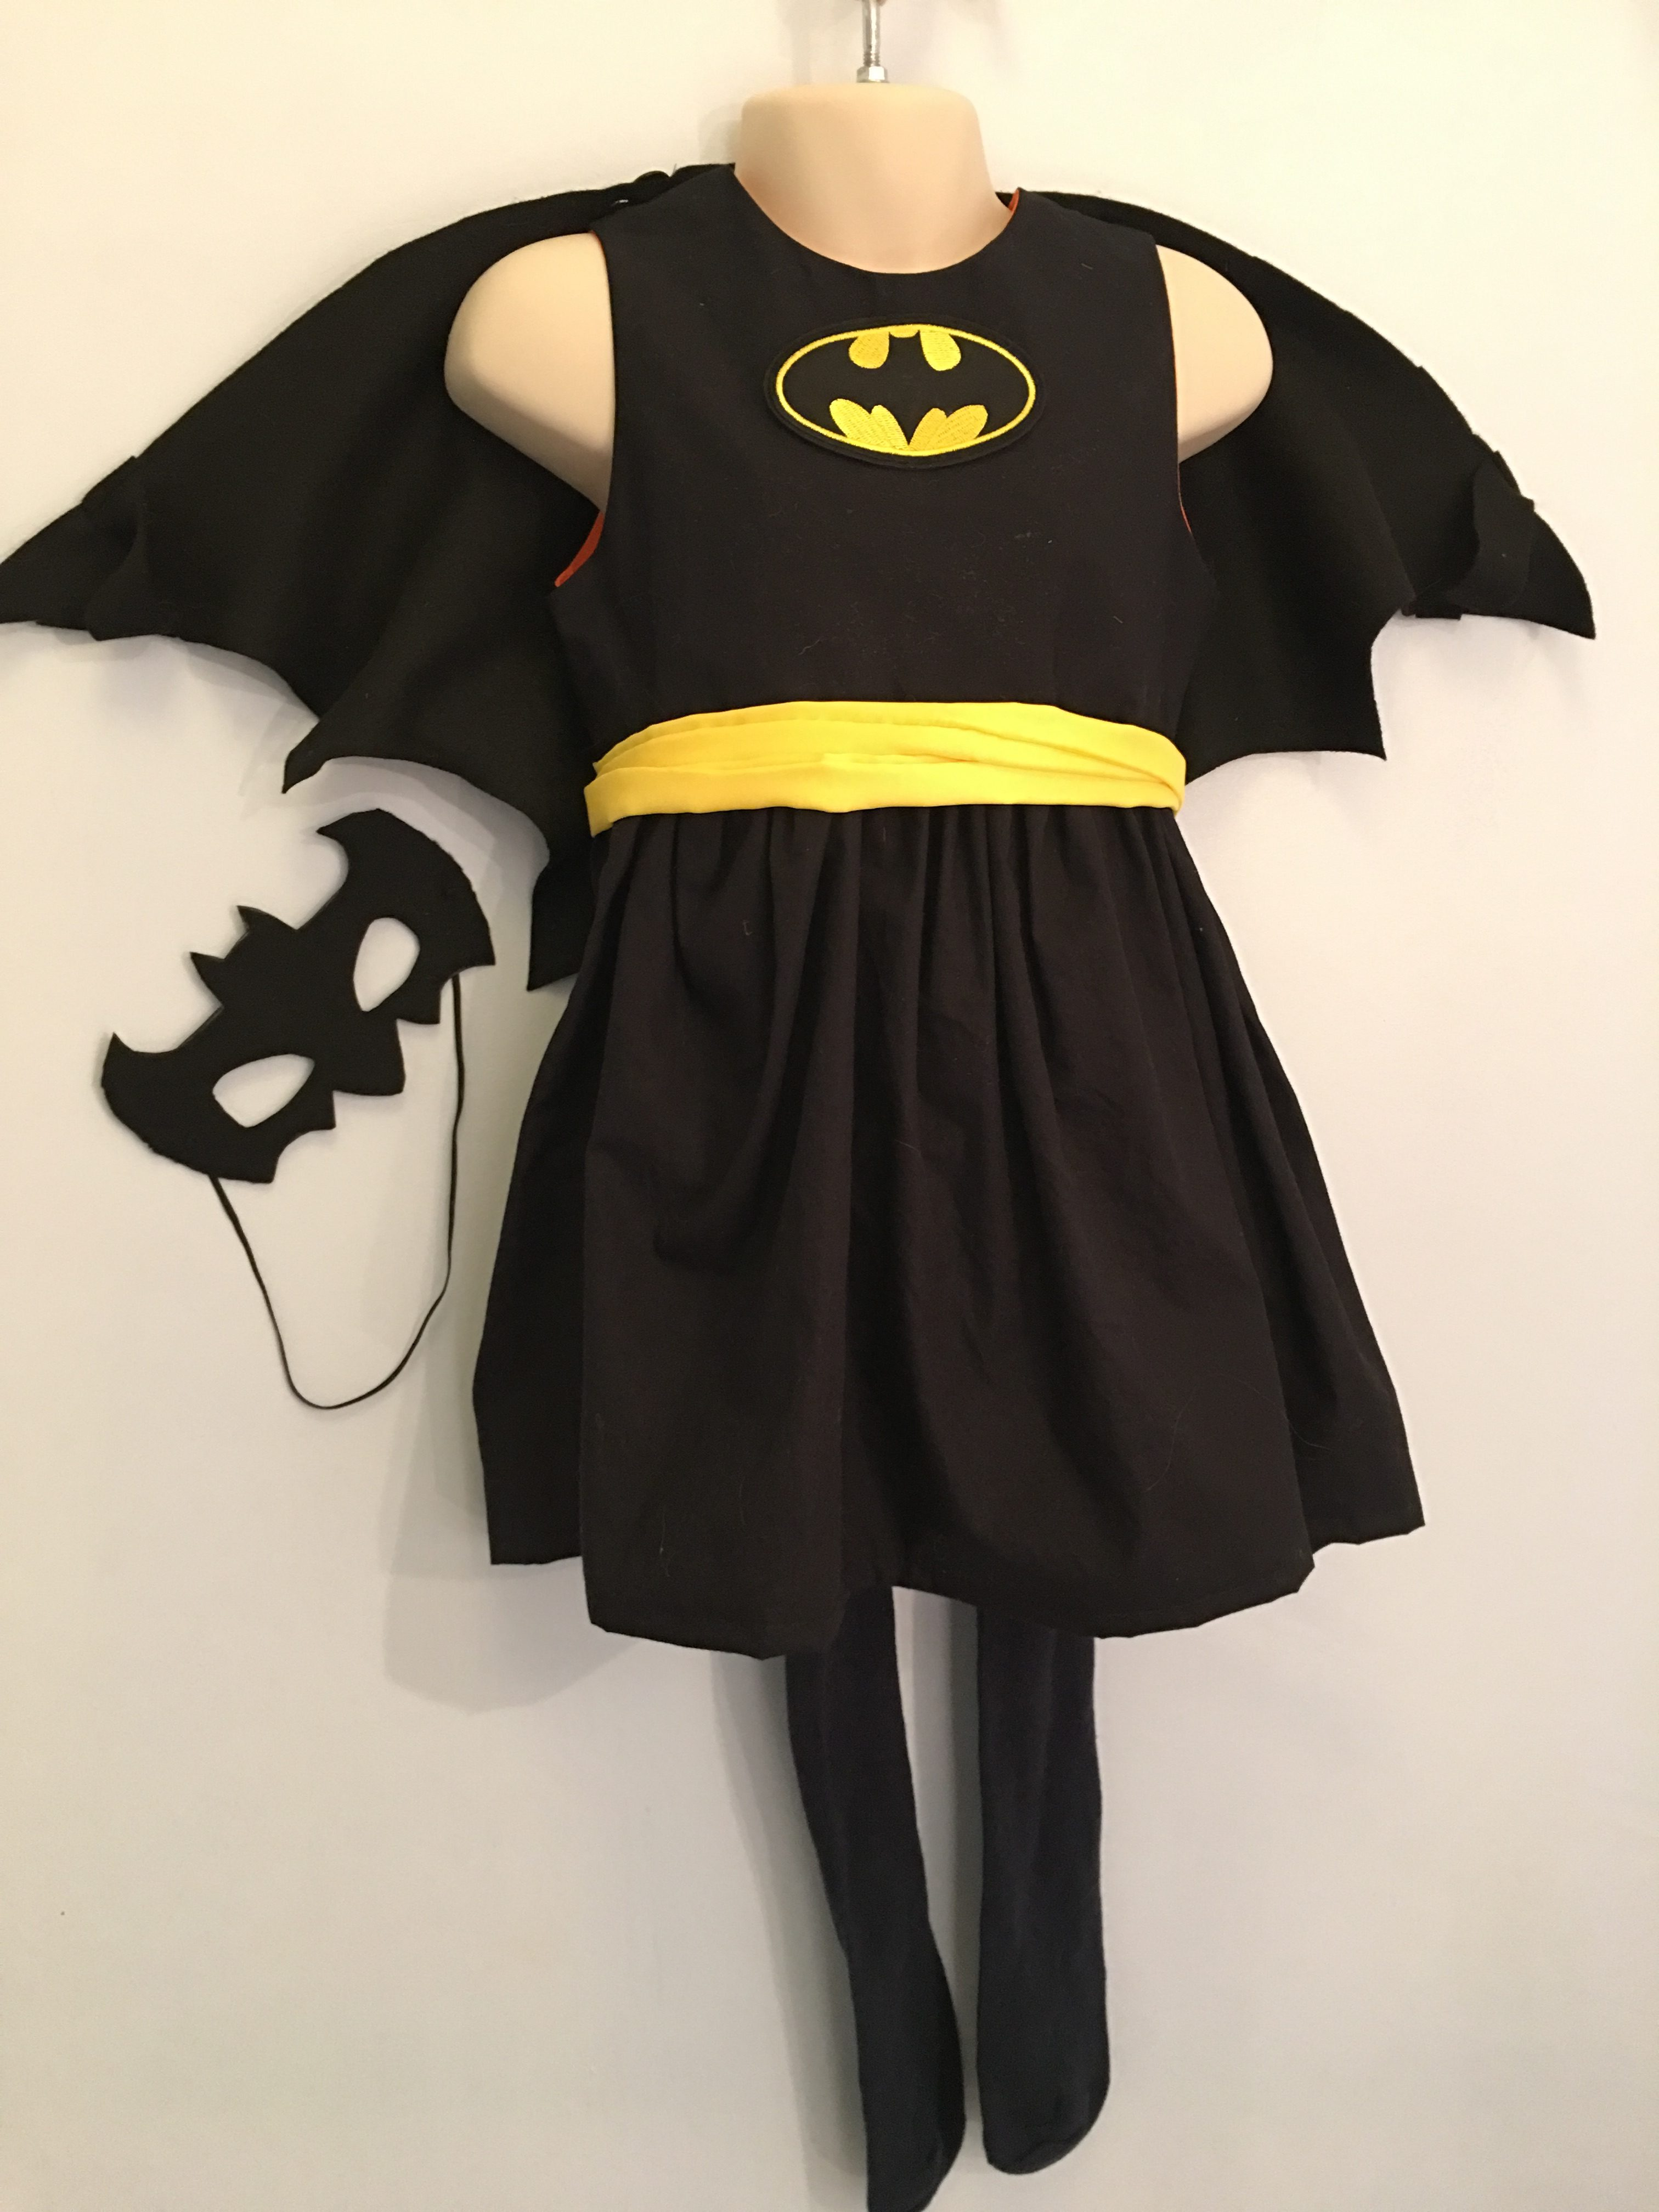 Batgirl Halloween Outfits Made Around A simple Black Dress - outfits for children dressing up that use a black dress as their base #halloweencostumes #halloweenoutfits #halloweenpartyideas #halloweencostumesforkids #halloweendiy #halloweencrafts #halloweencostumeideas #halloweenwitch #dressingup #dressupideas #batgirl